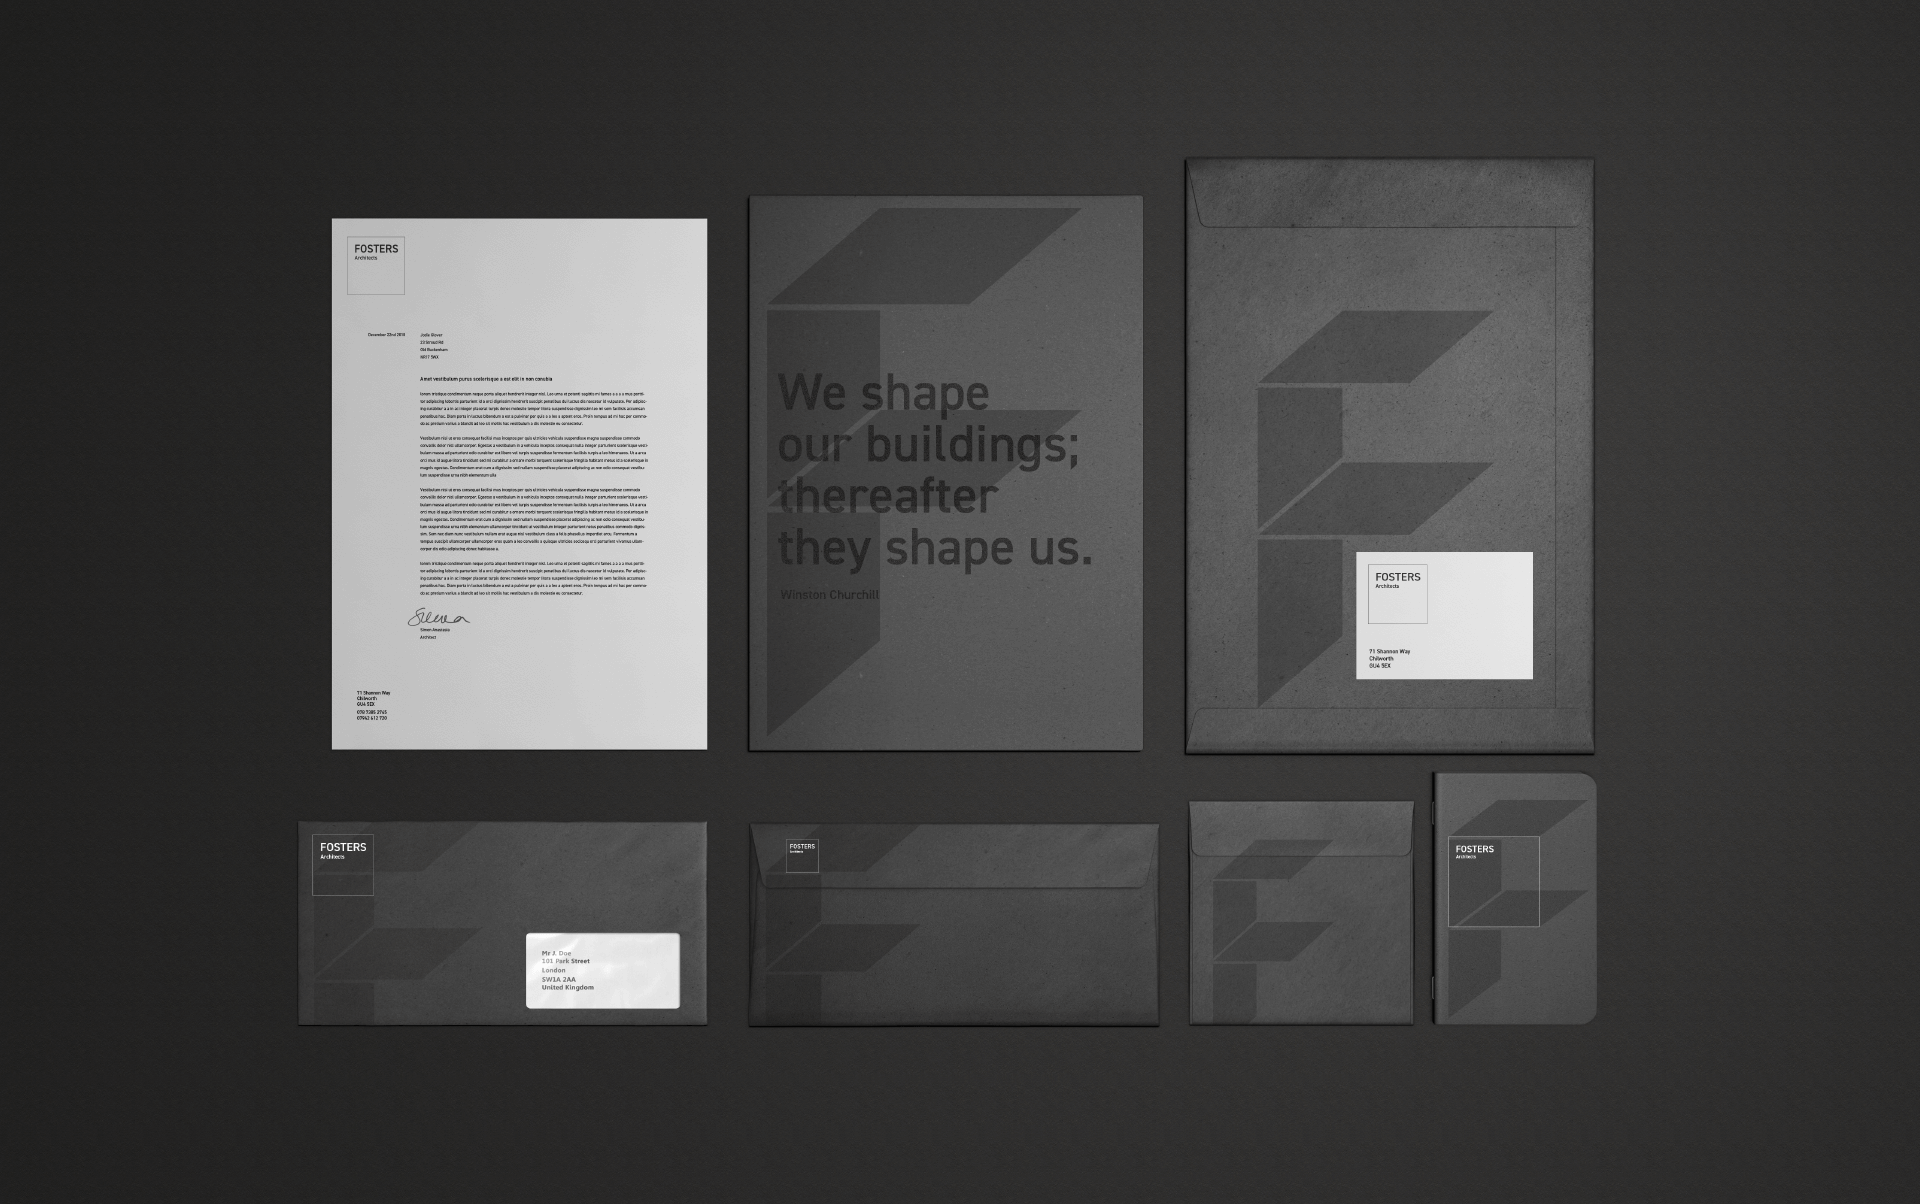 fosters architects presentation-07.png